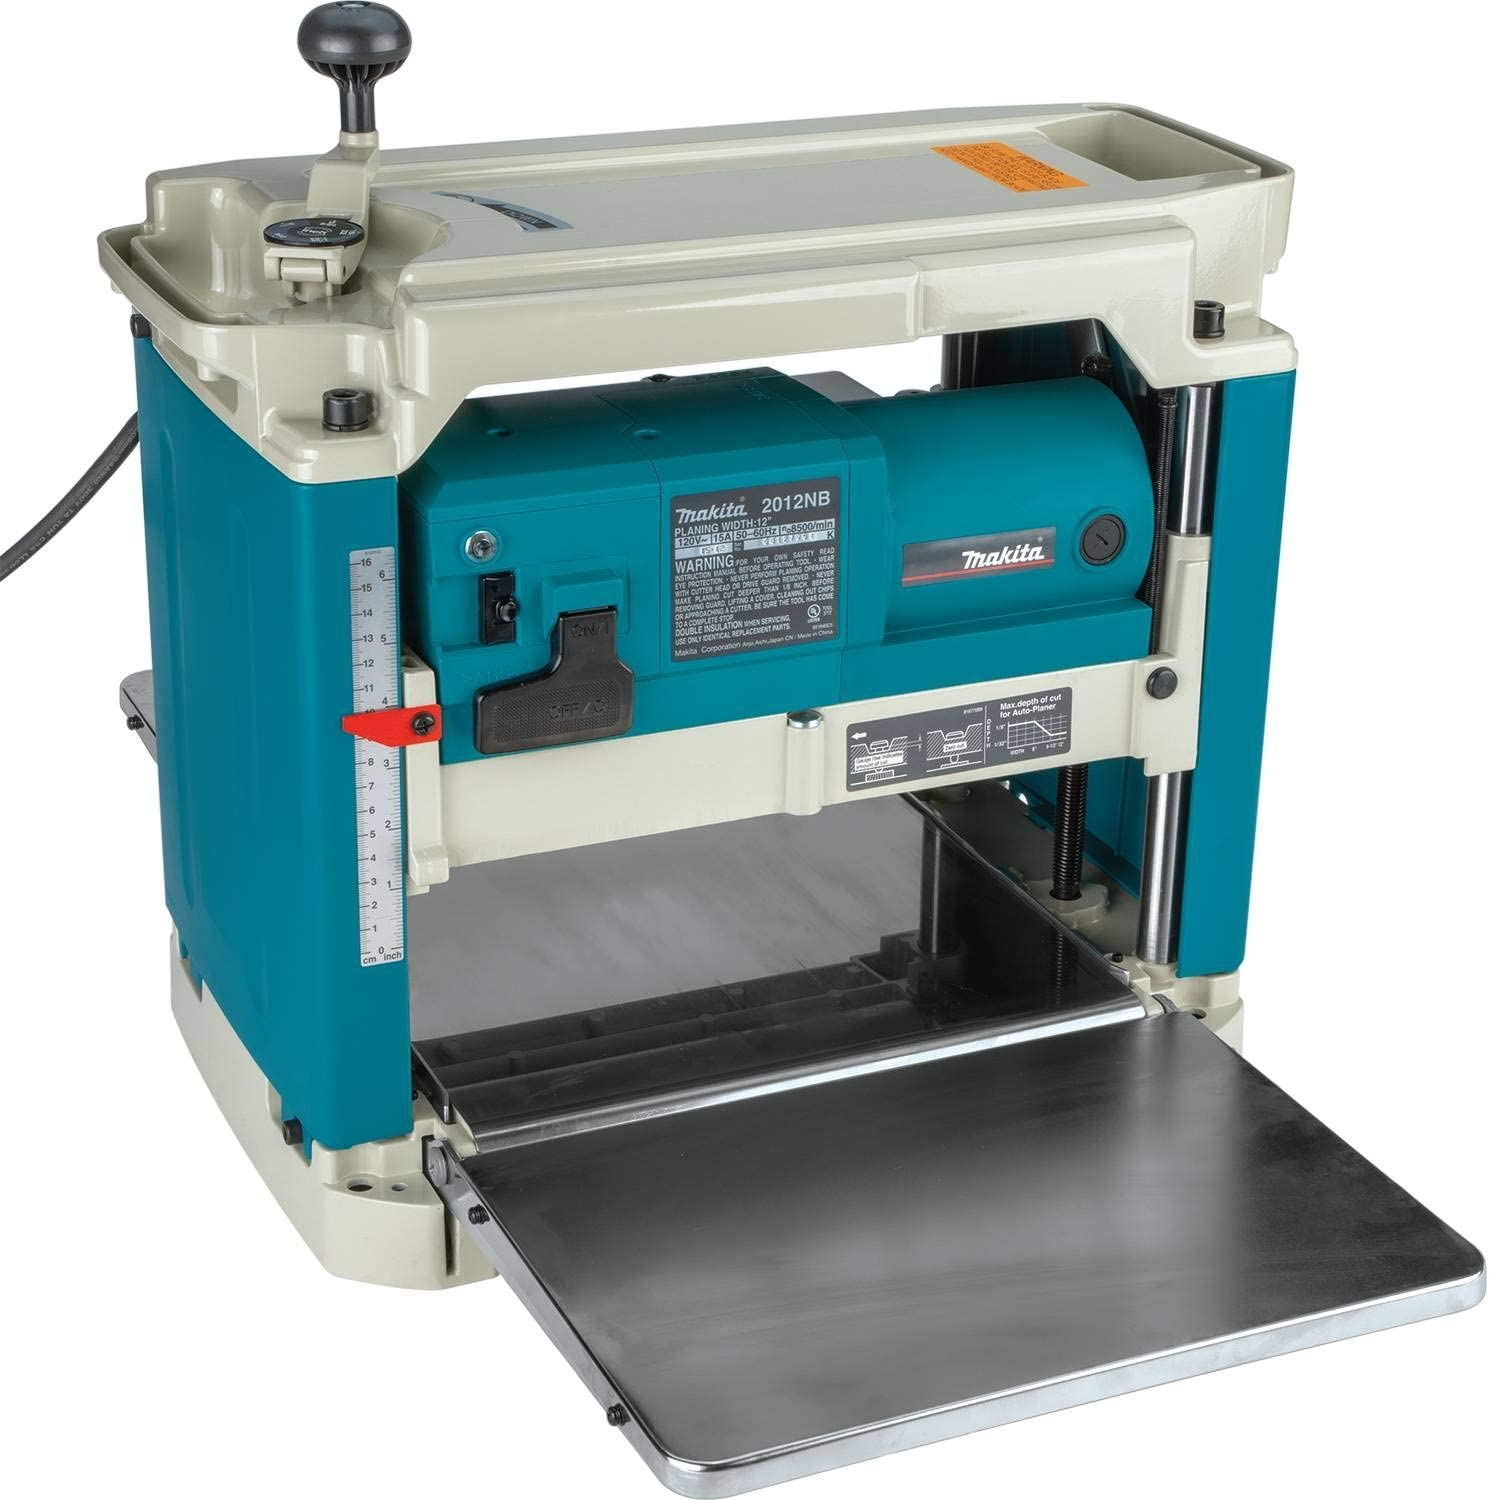 Makita 2012NB - PLANER 1650W, 12″ – (304 mm)